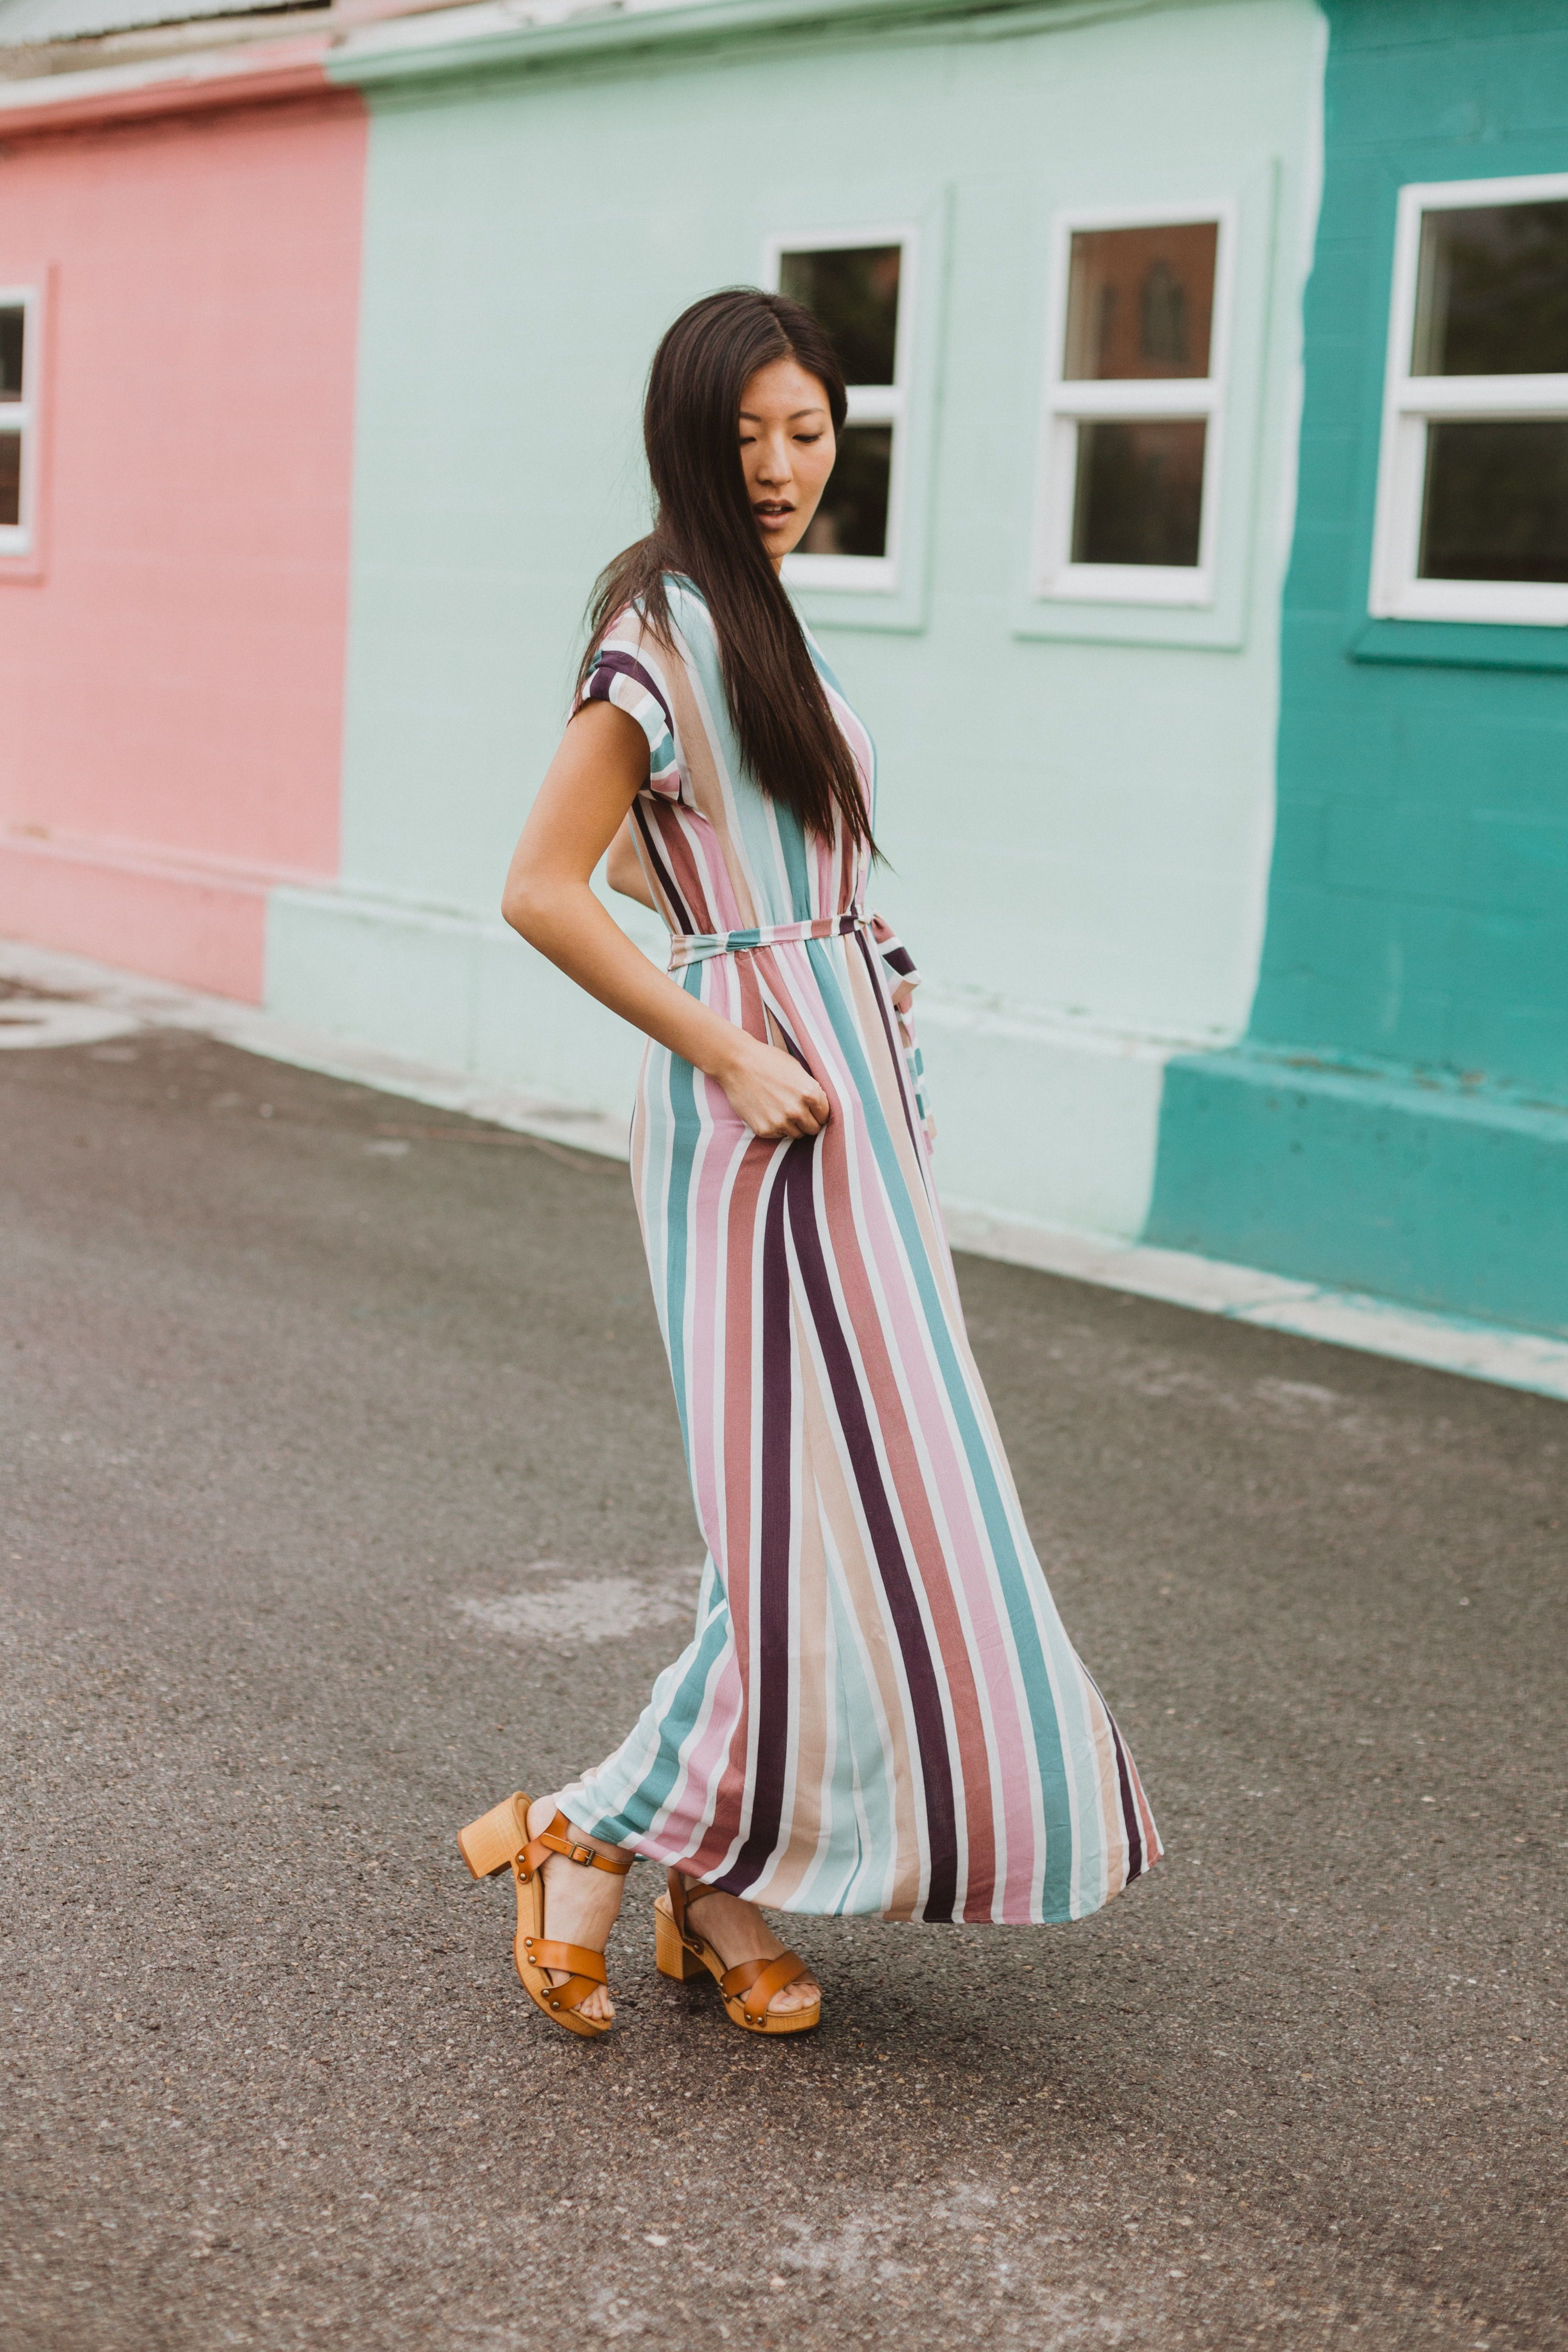 The Cha Cha Striped Maxi Dress Is As If All Your Favorite Things Came Together As A Dress It Is Nursing Friendly Striped Maxi Dresses Striped Maxi Maxi Dress [ 4500 x 3000 Pixel ]